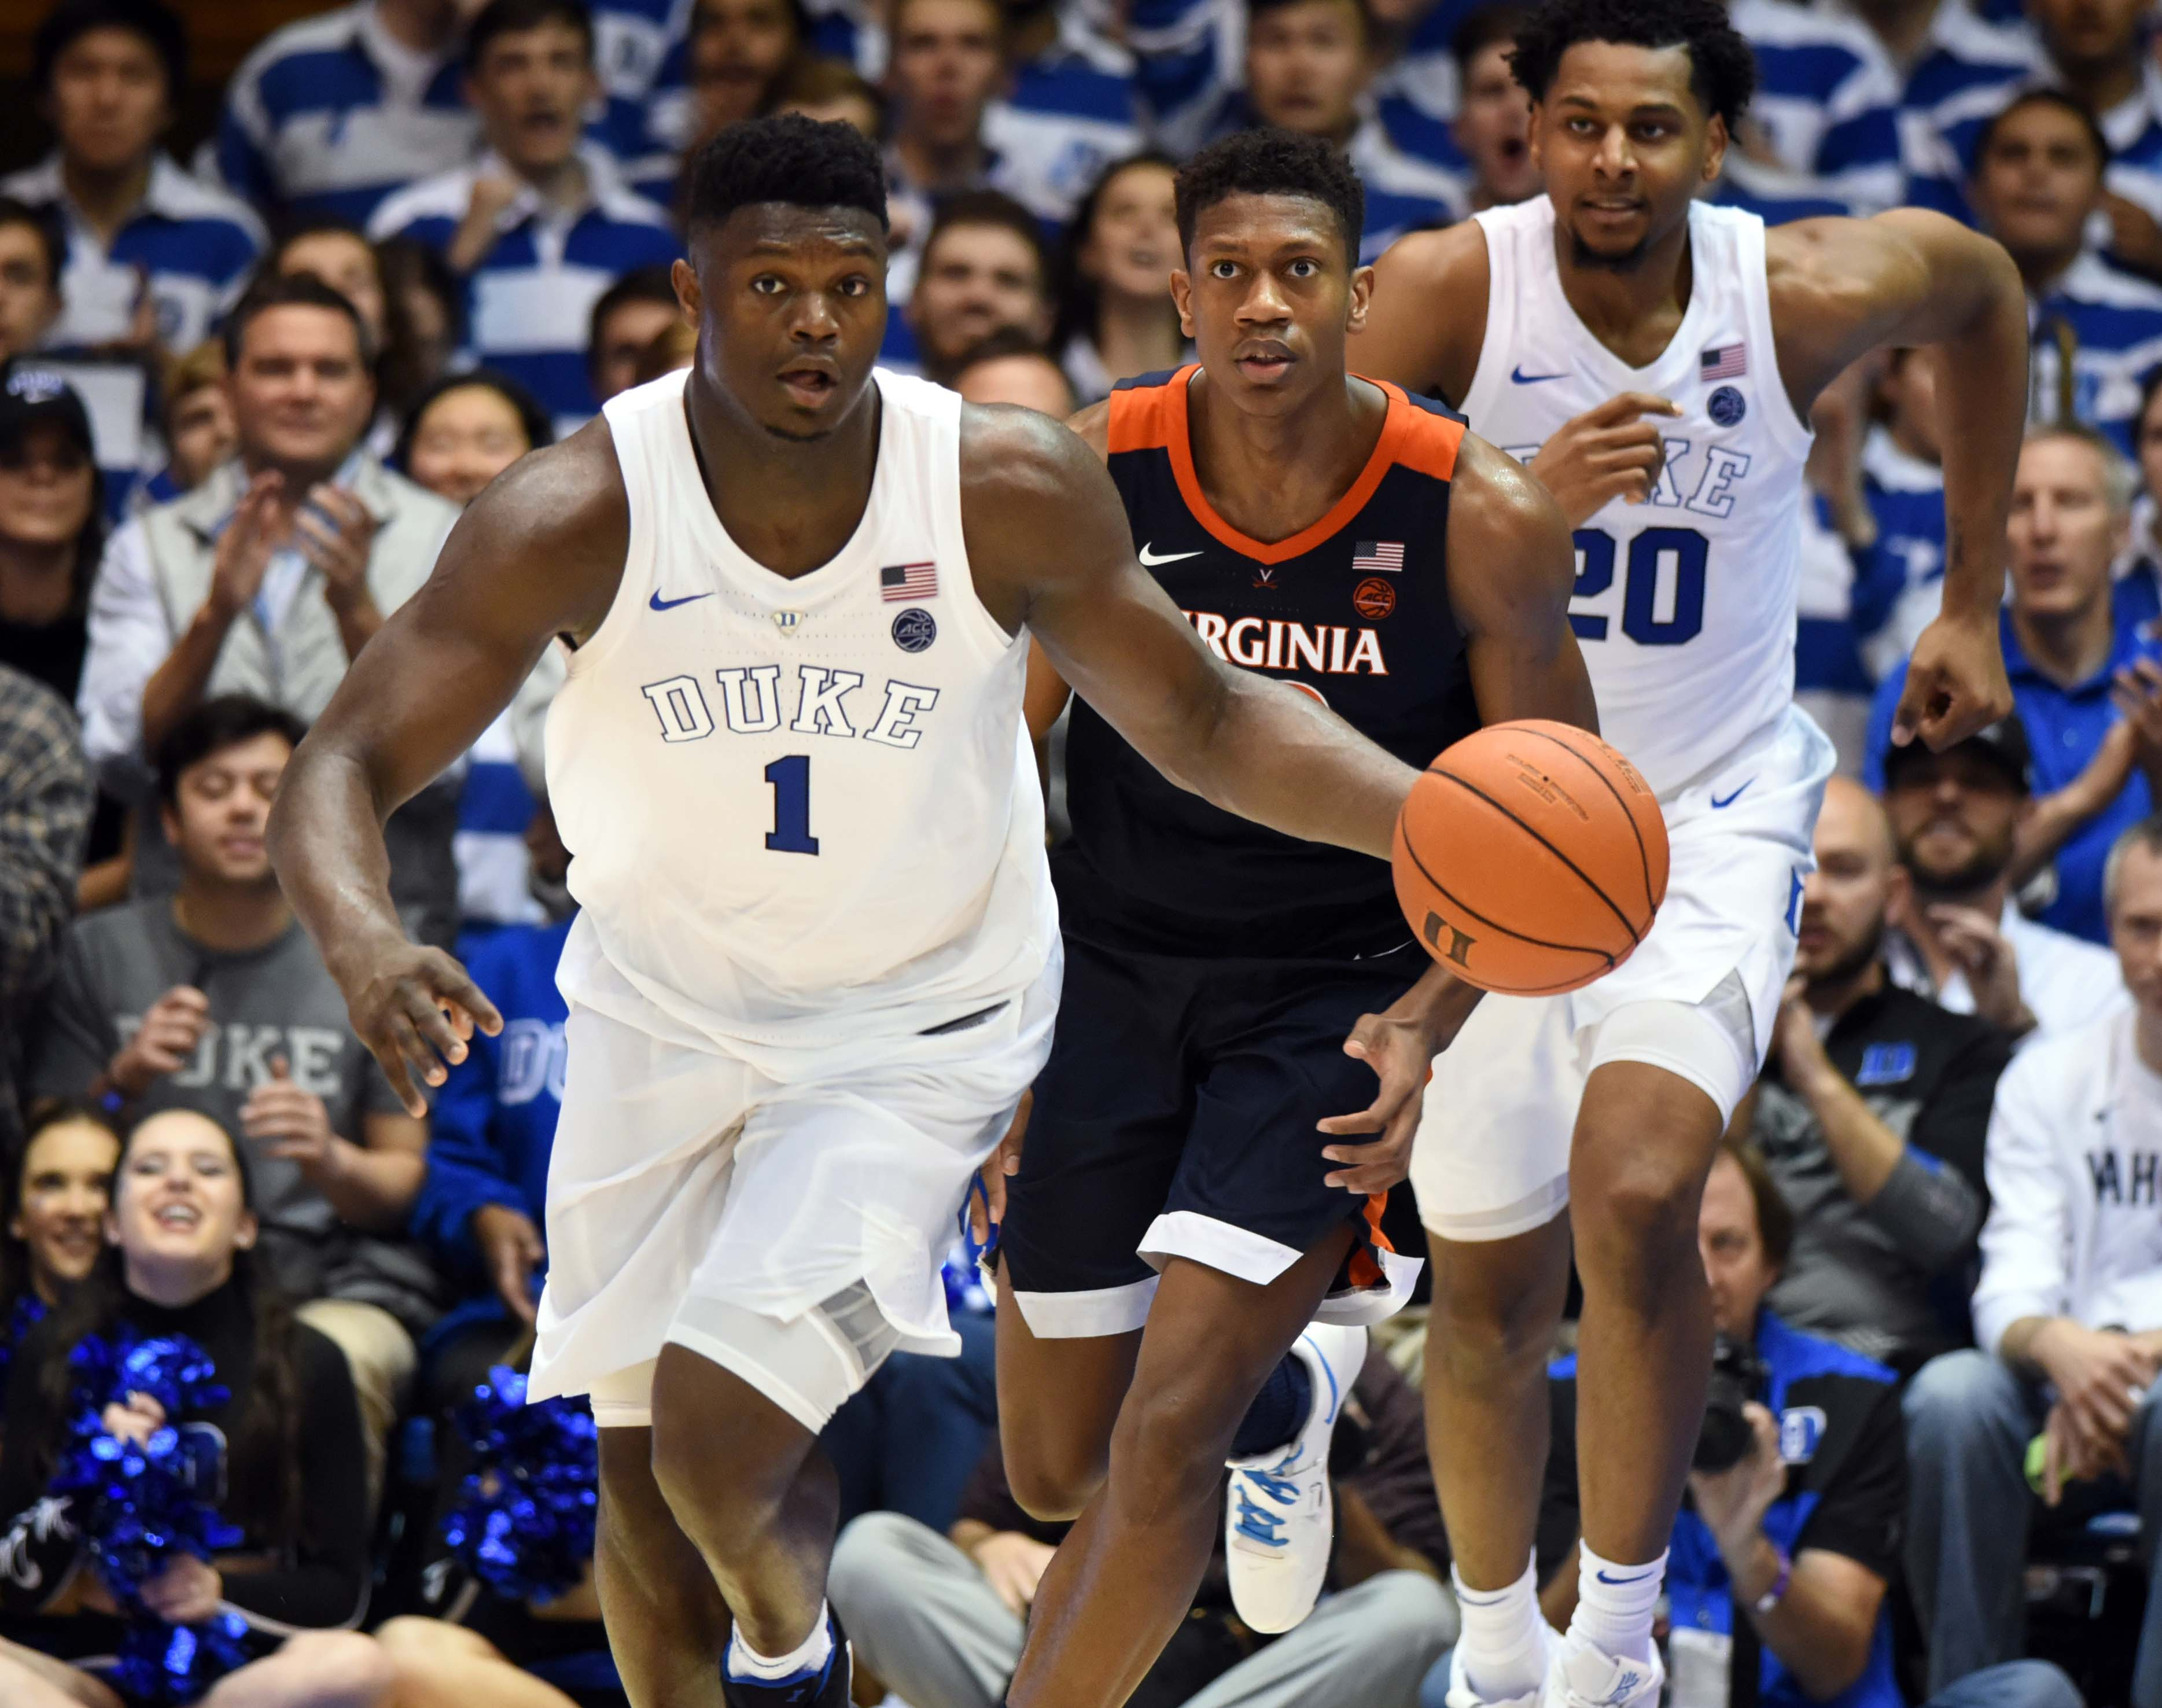 College Basketball Bracketology 2019 Thrilling Saturday Leads To